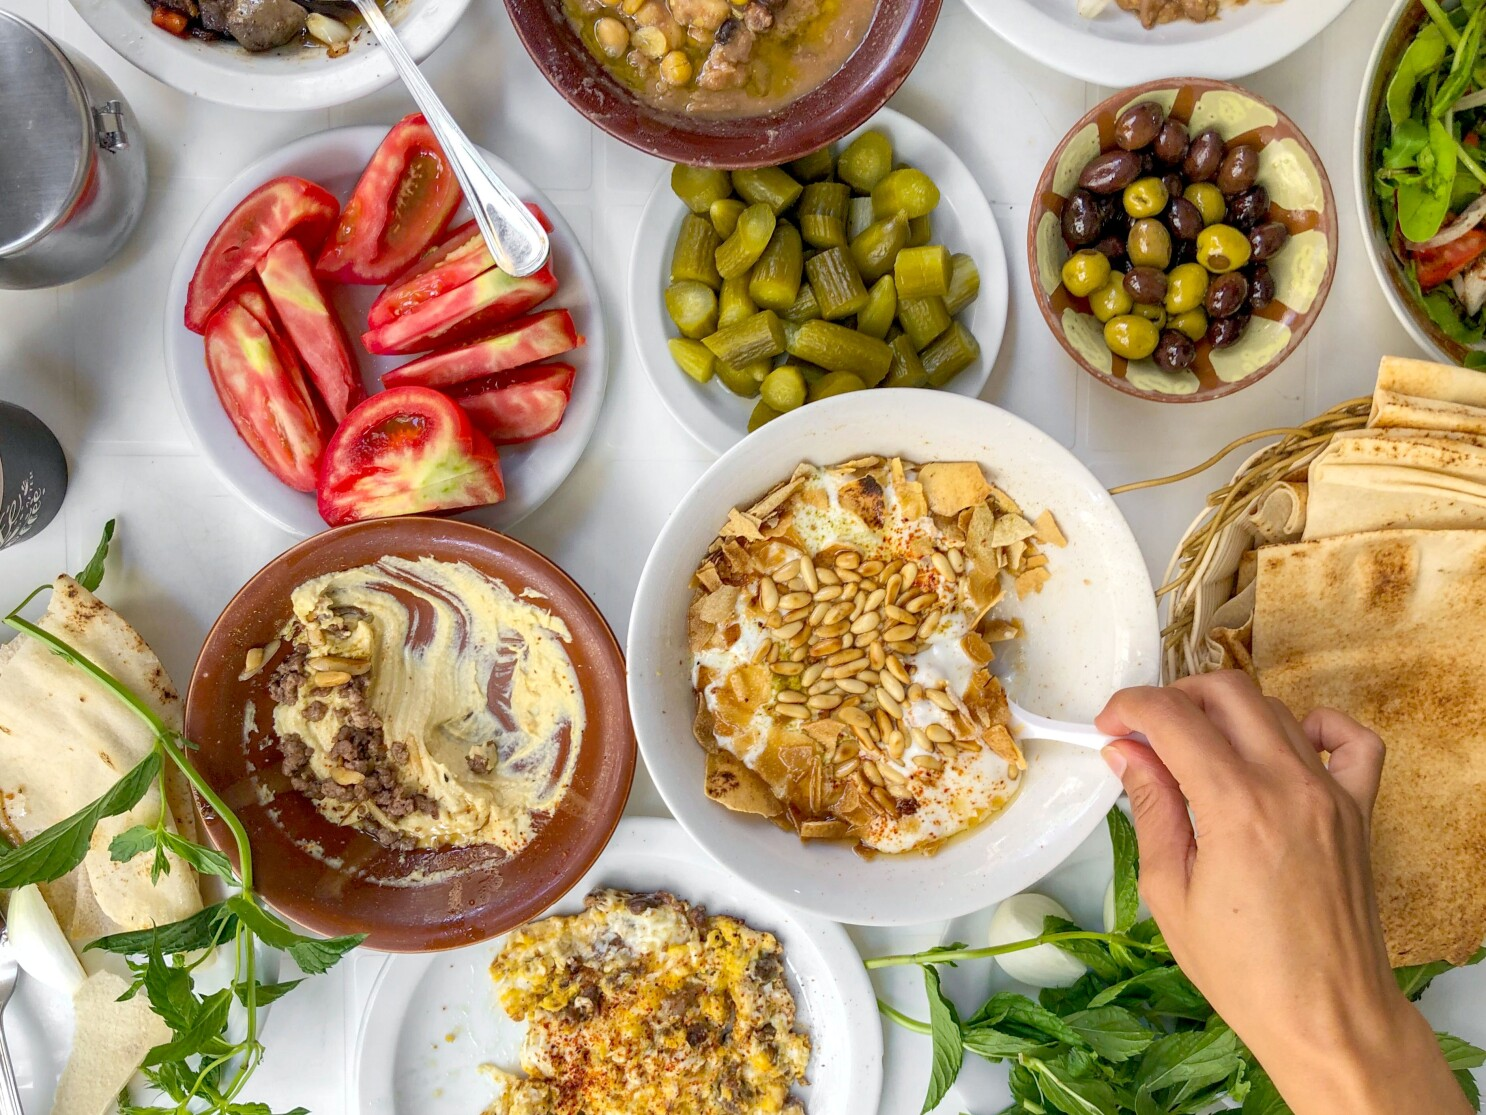 A food critic feeds his love for Lebanese cuisine at the source